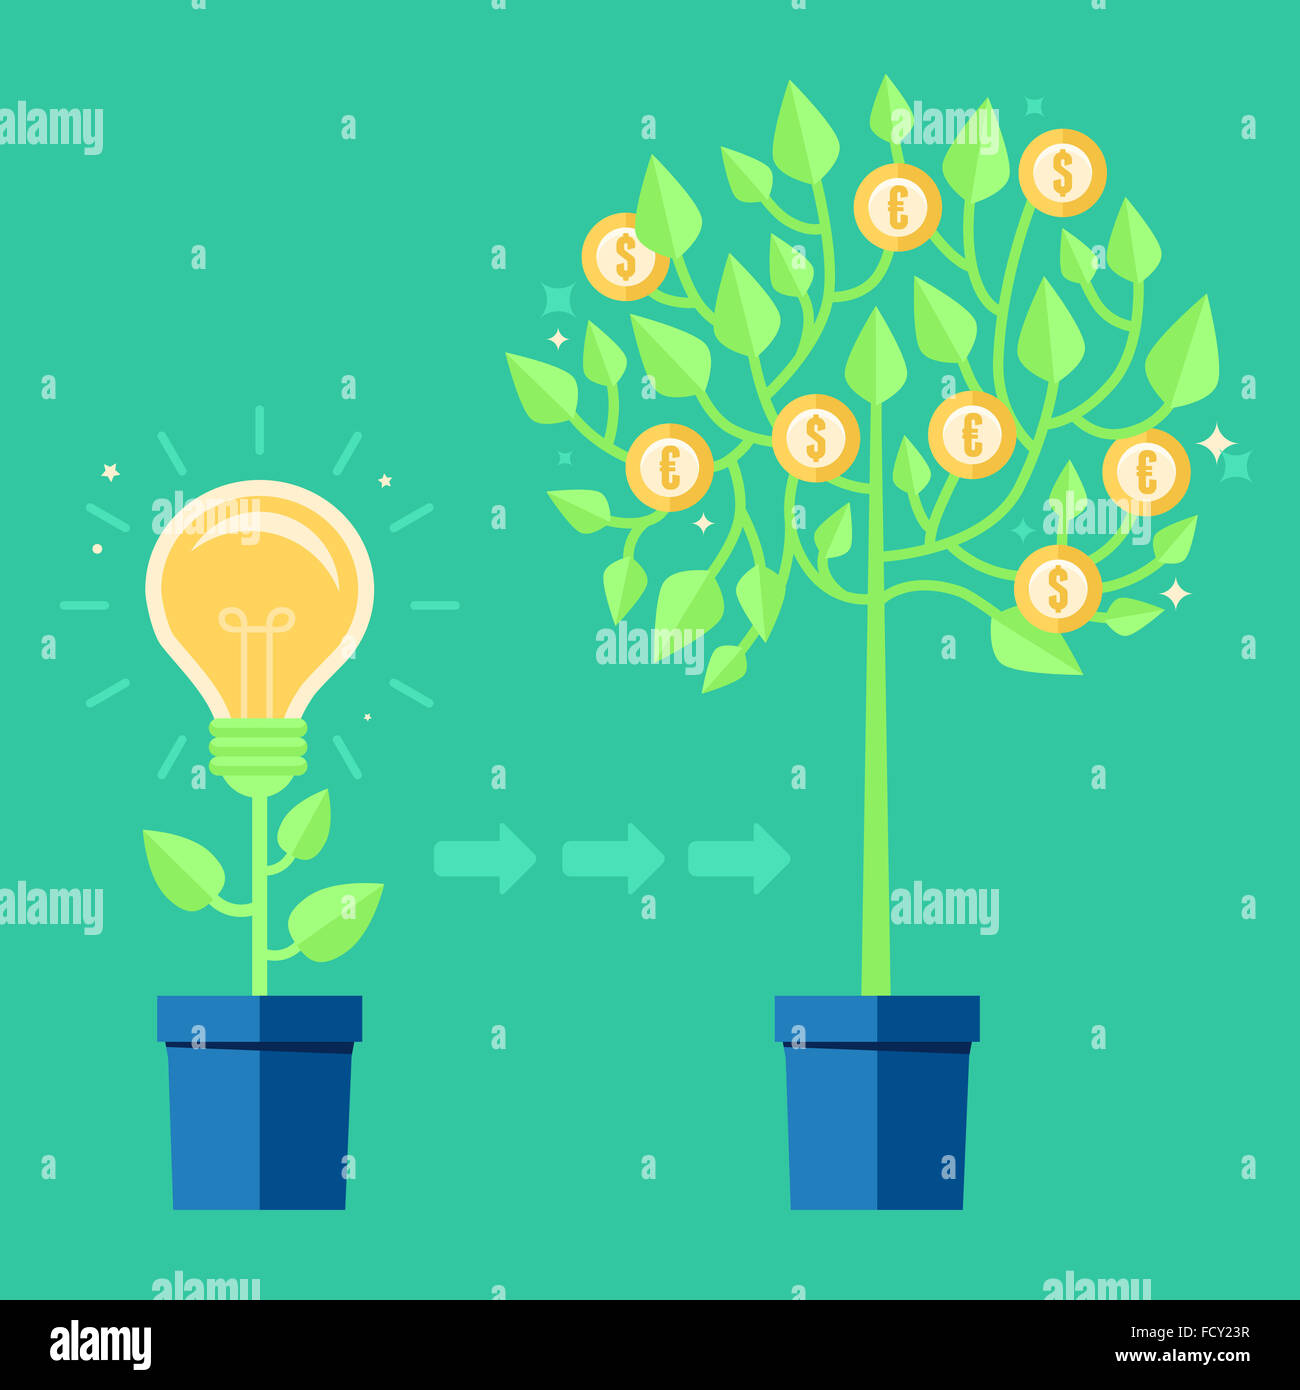 Creative concept in flat style - light bulb growing from the flower pot - idea icon - Stock Image